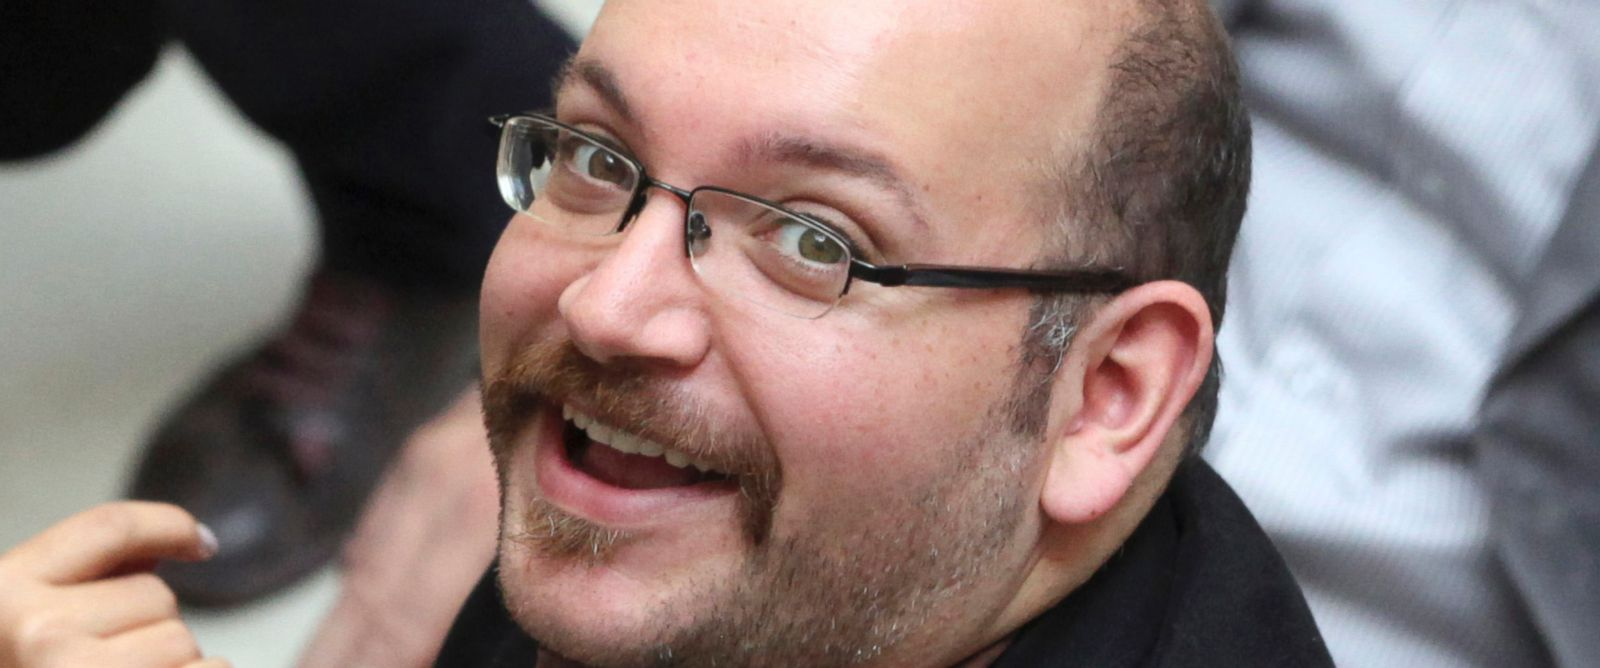 PHOTO: In this photo April 11, 2013 file photo, Jason Rezaian, an Iranian-American correspondent for the Washington Post, smiles as he attends a presidential campaign of President Hassan Rouhani, in Tehran, Iran.